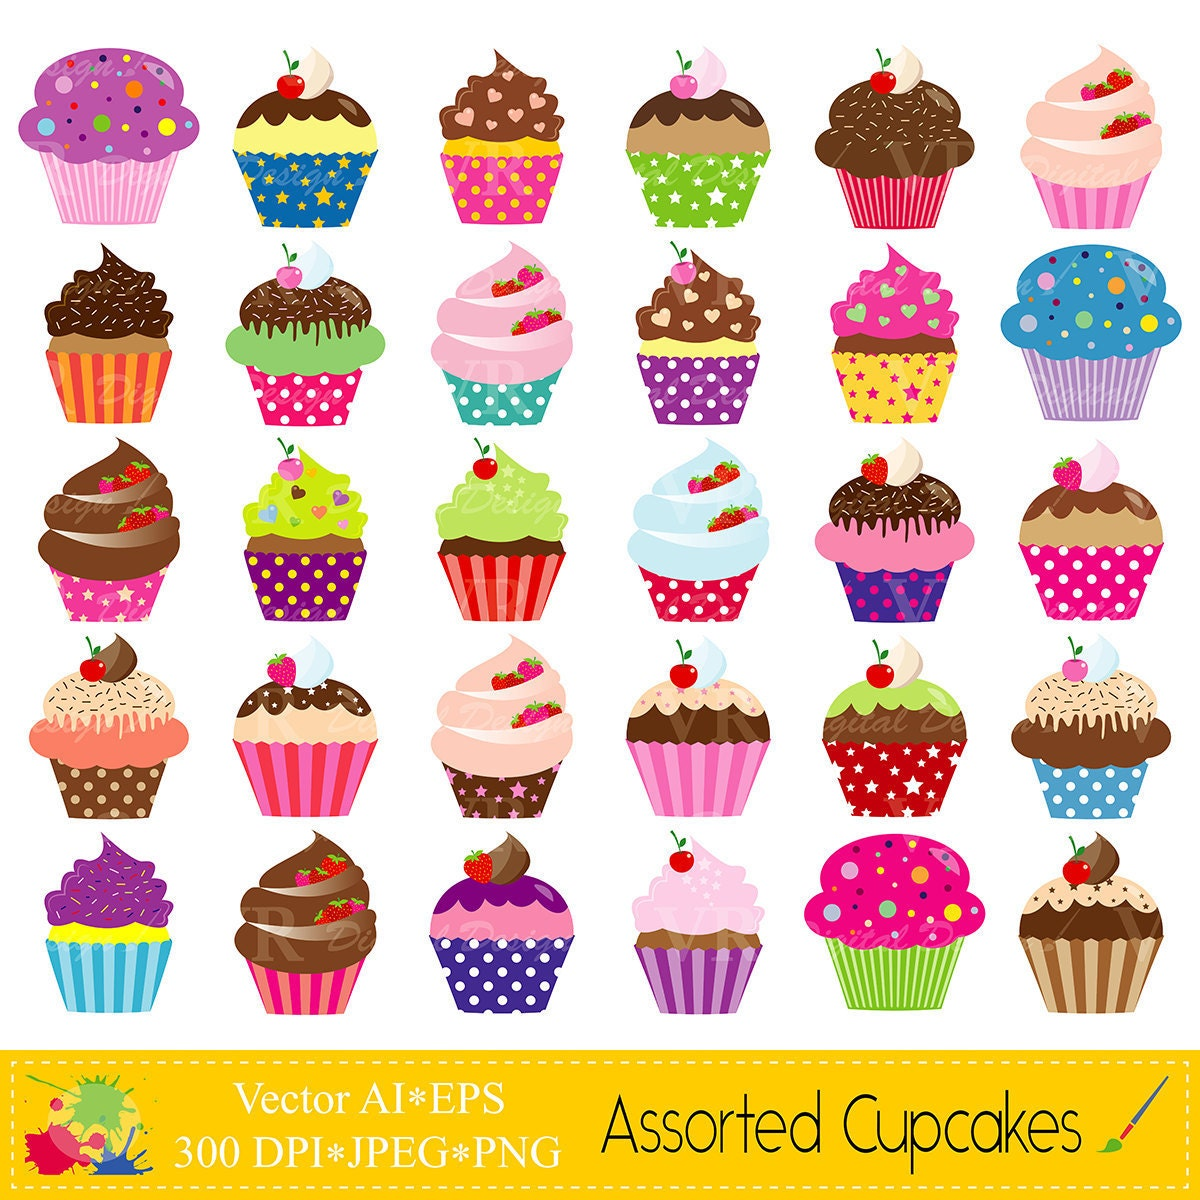 Clip Art Clip Art Cupcake cupcake clip art etsy assorted cupcakes set colorful instant digital download vector illustrations scrapbooking clipart